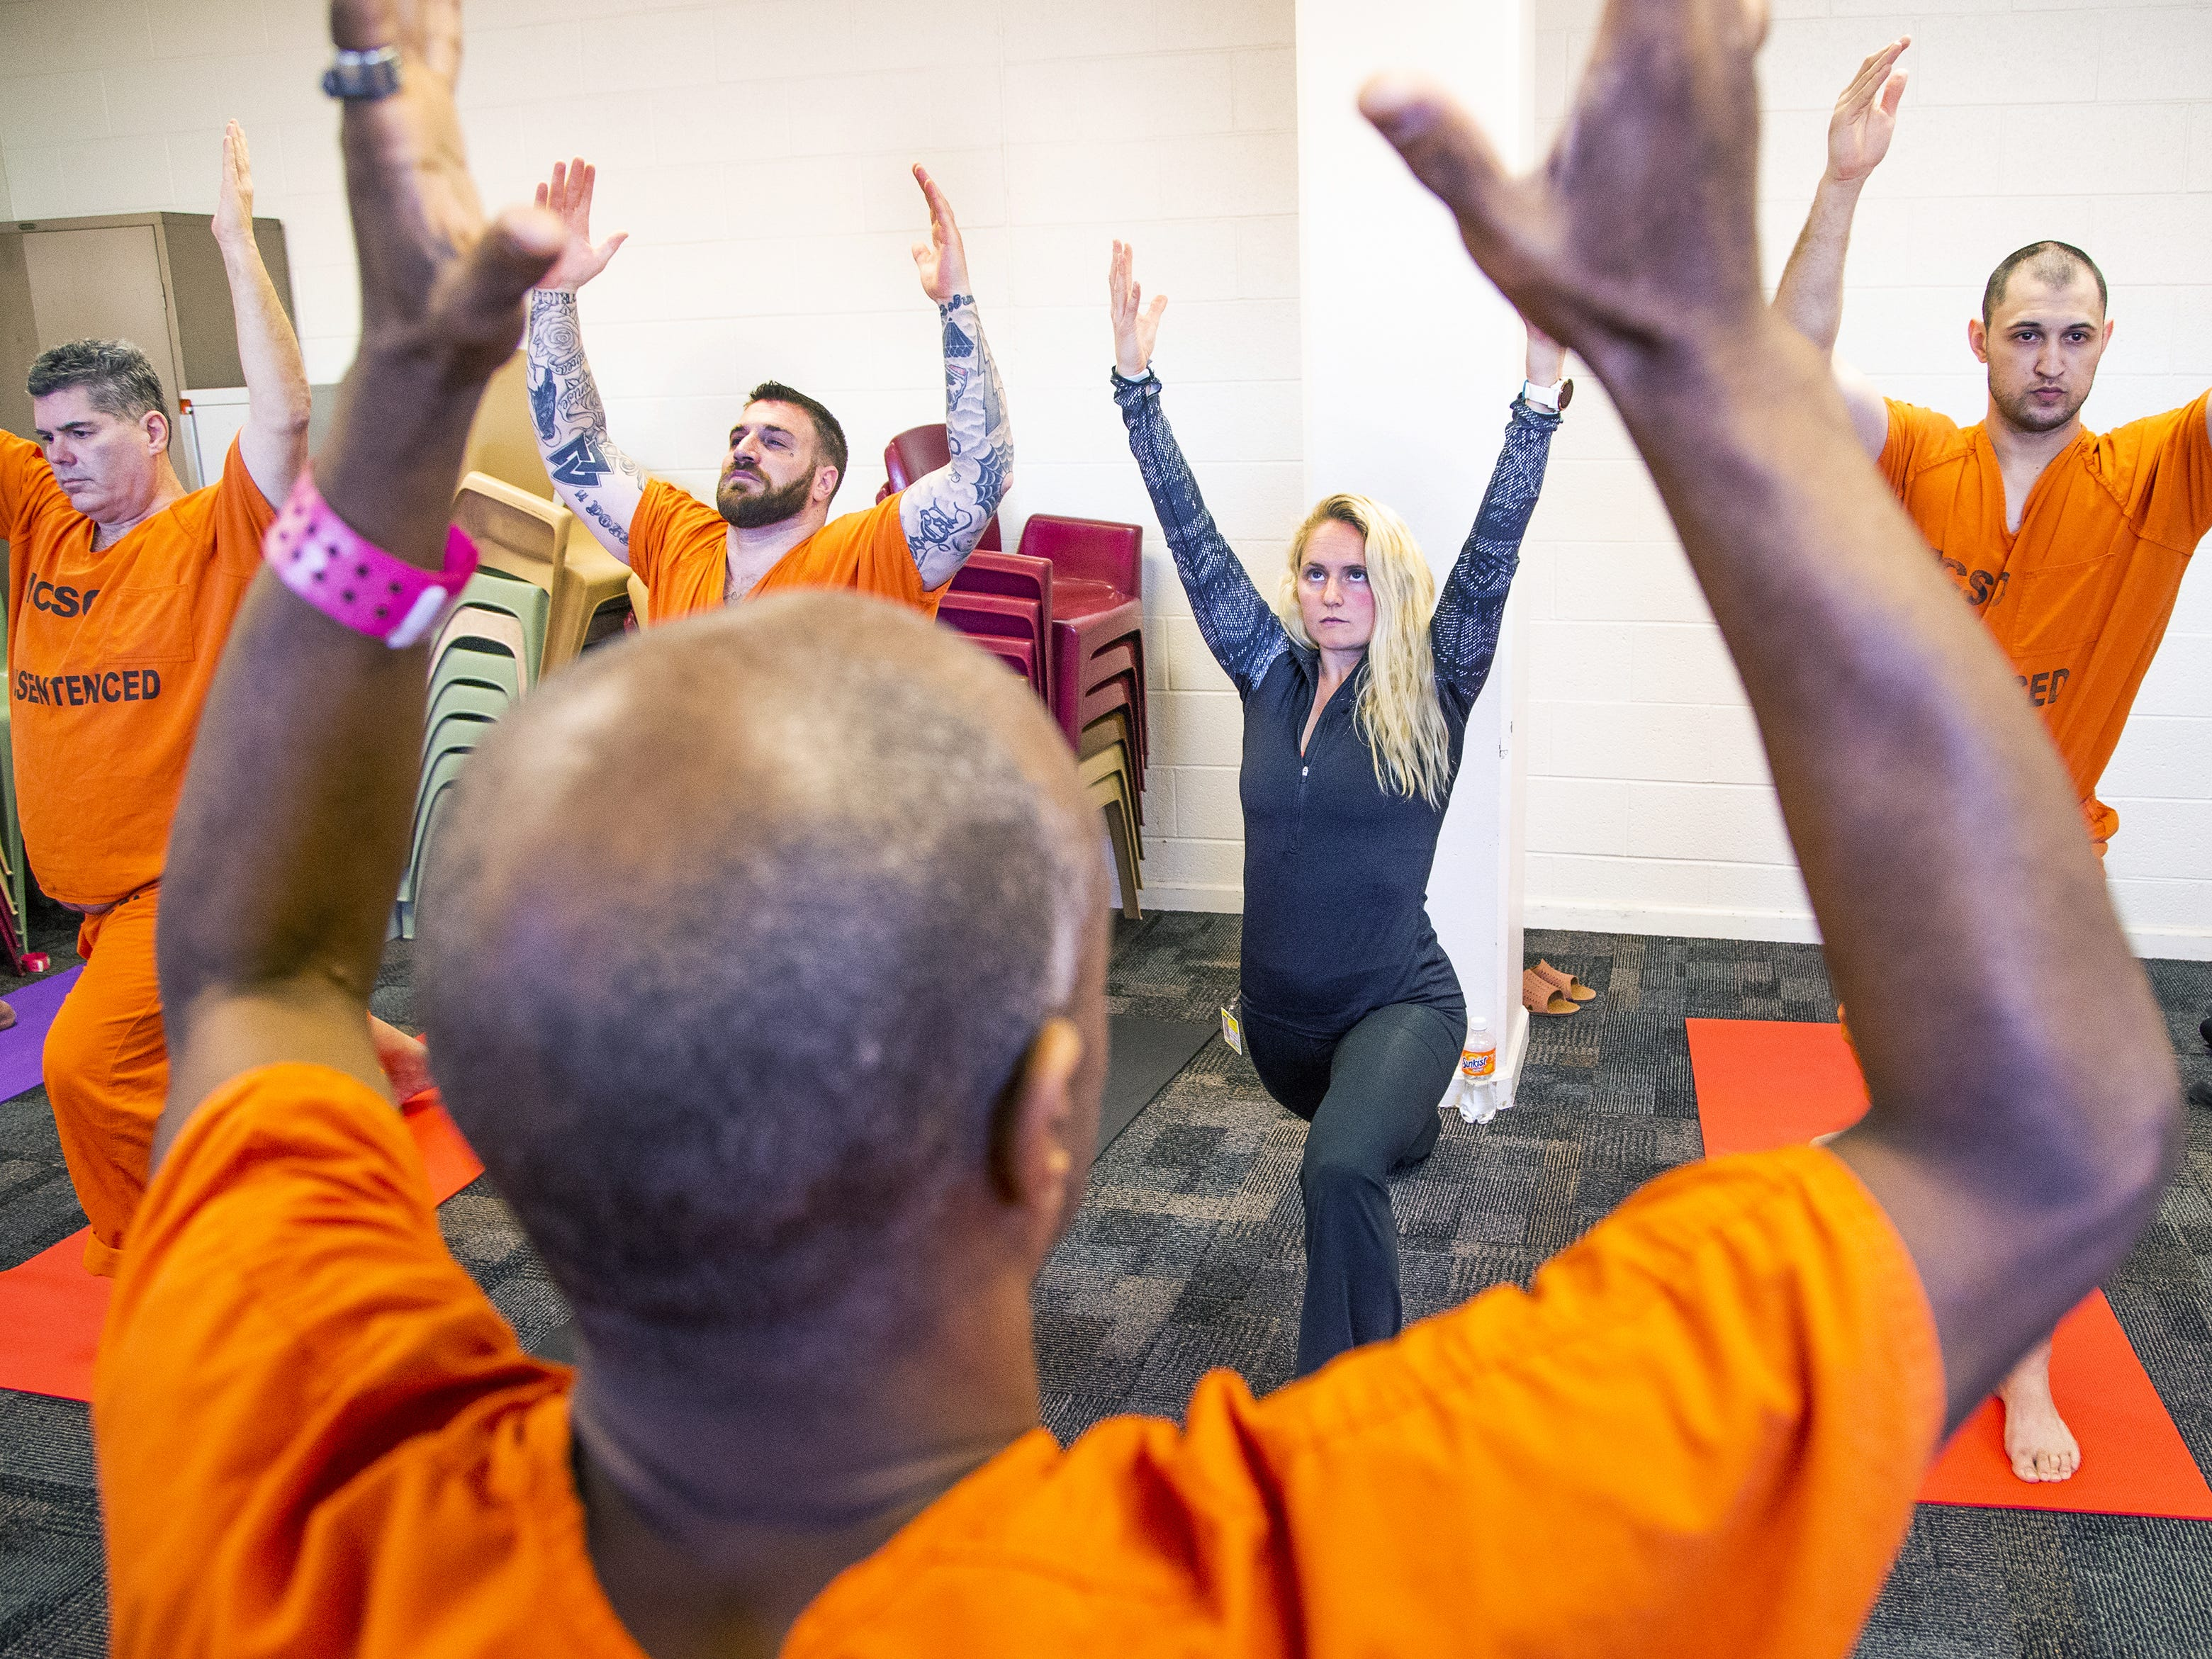 Volunteer Allison Merlo helps run a yoga class offered by the Prison Yoga Project Phoenix at the Maricopa County Towers Jail complex on Jan. 11, 2019.